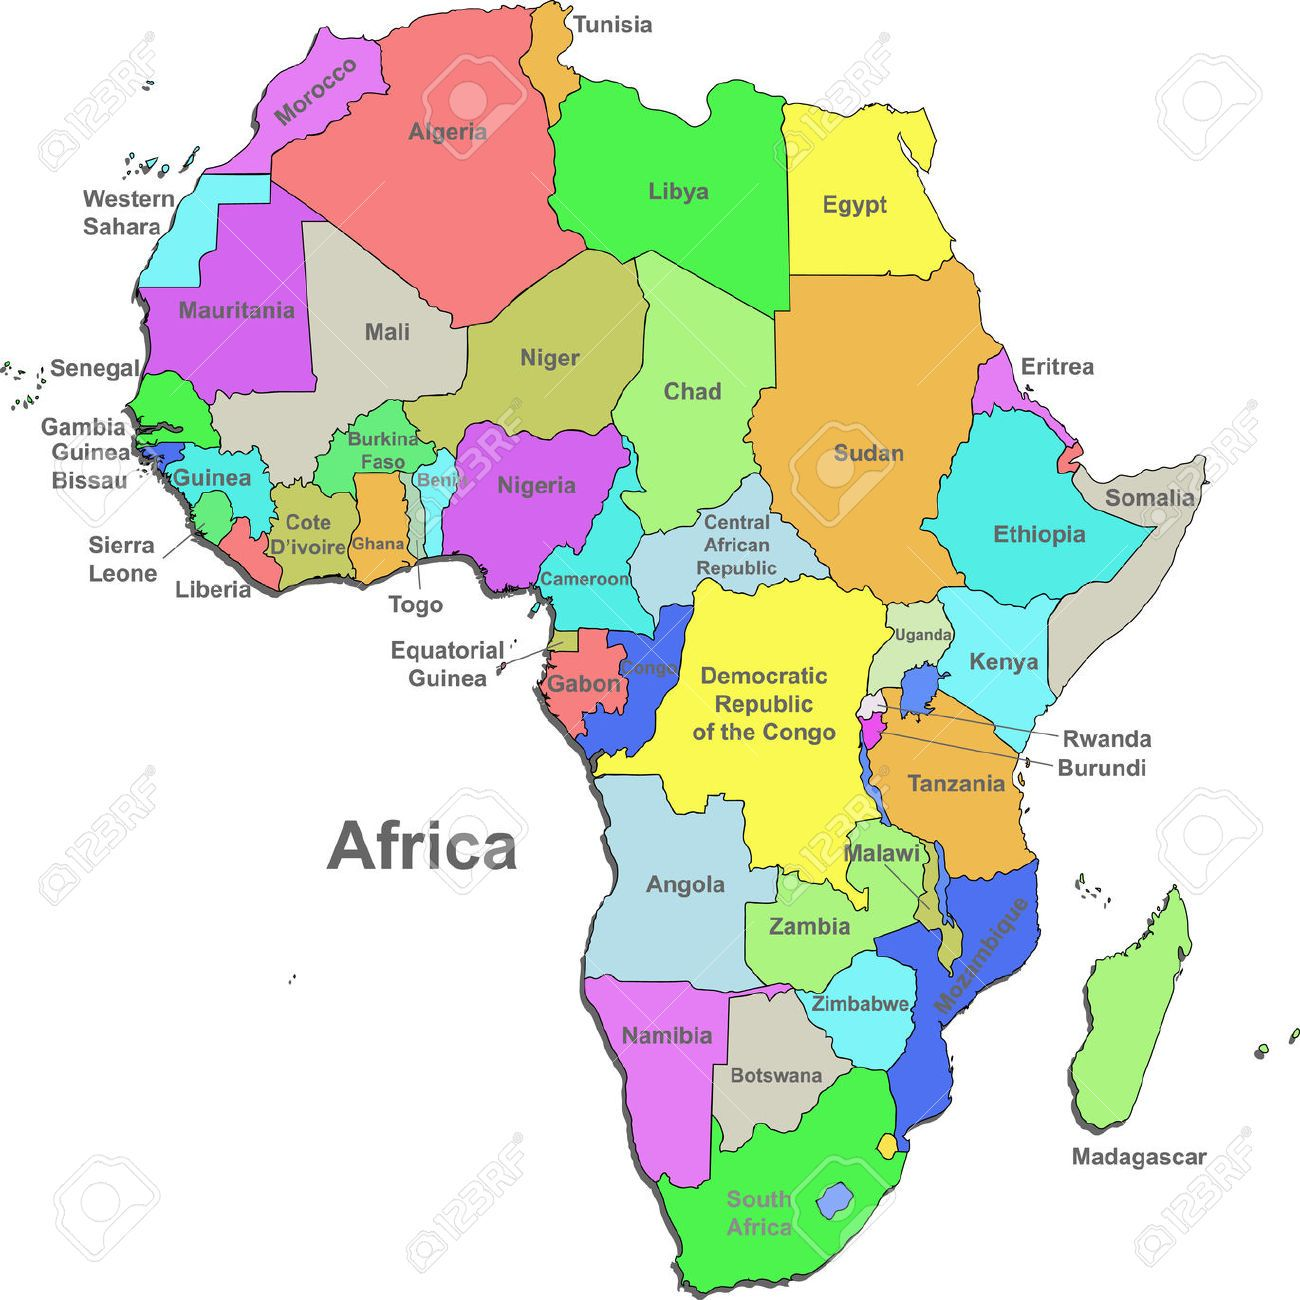 africa map by countries